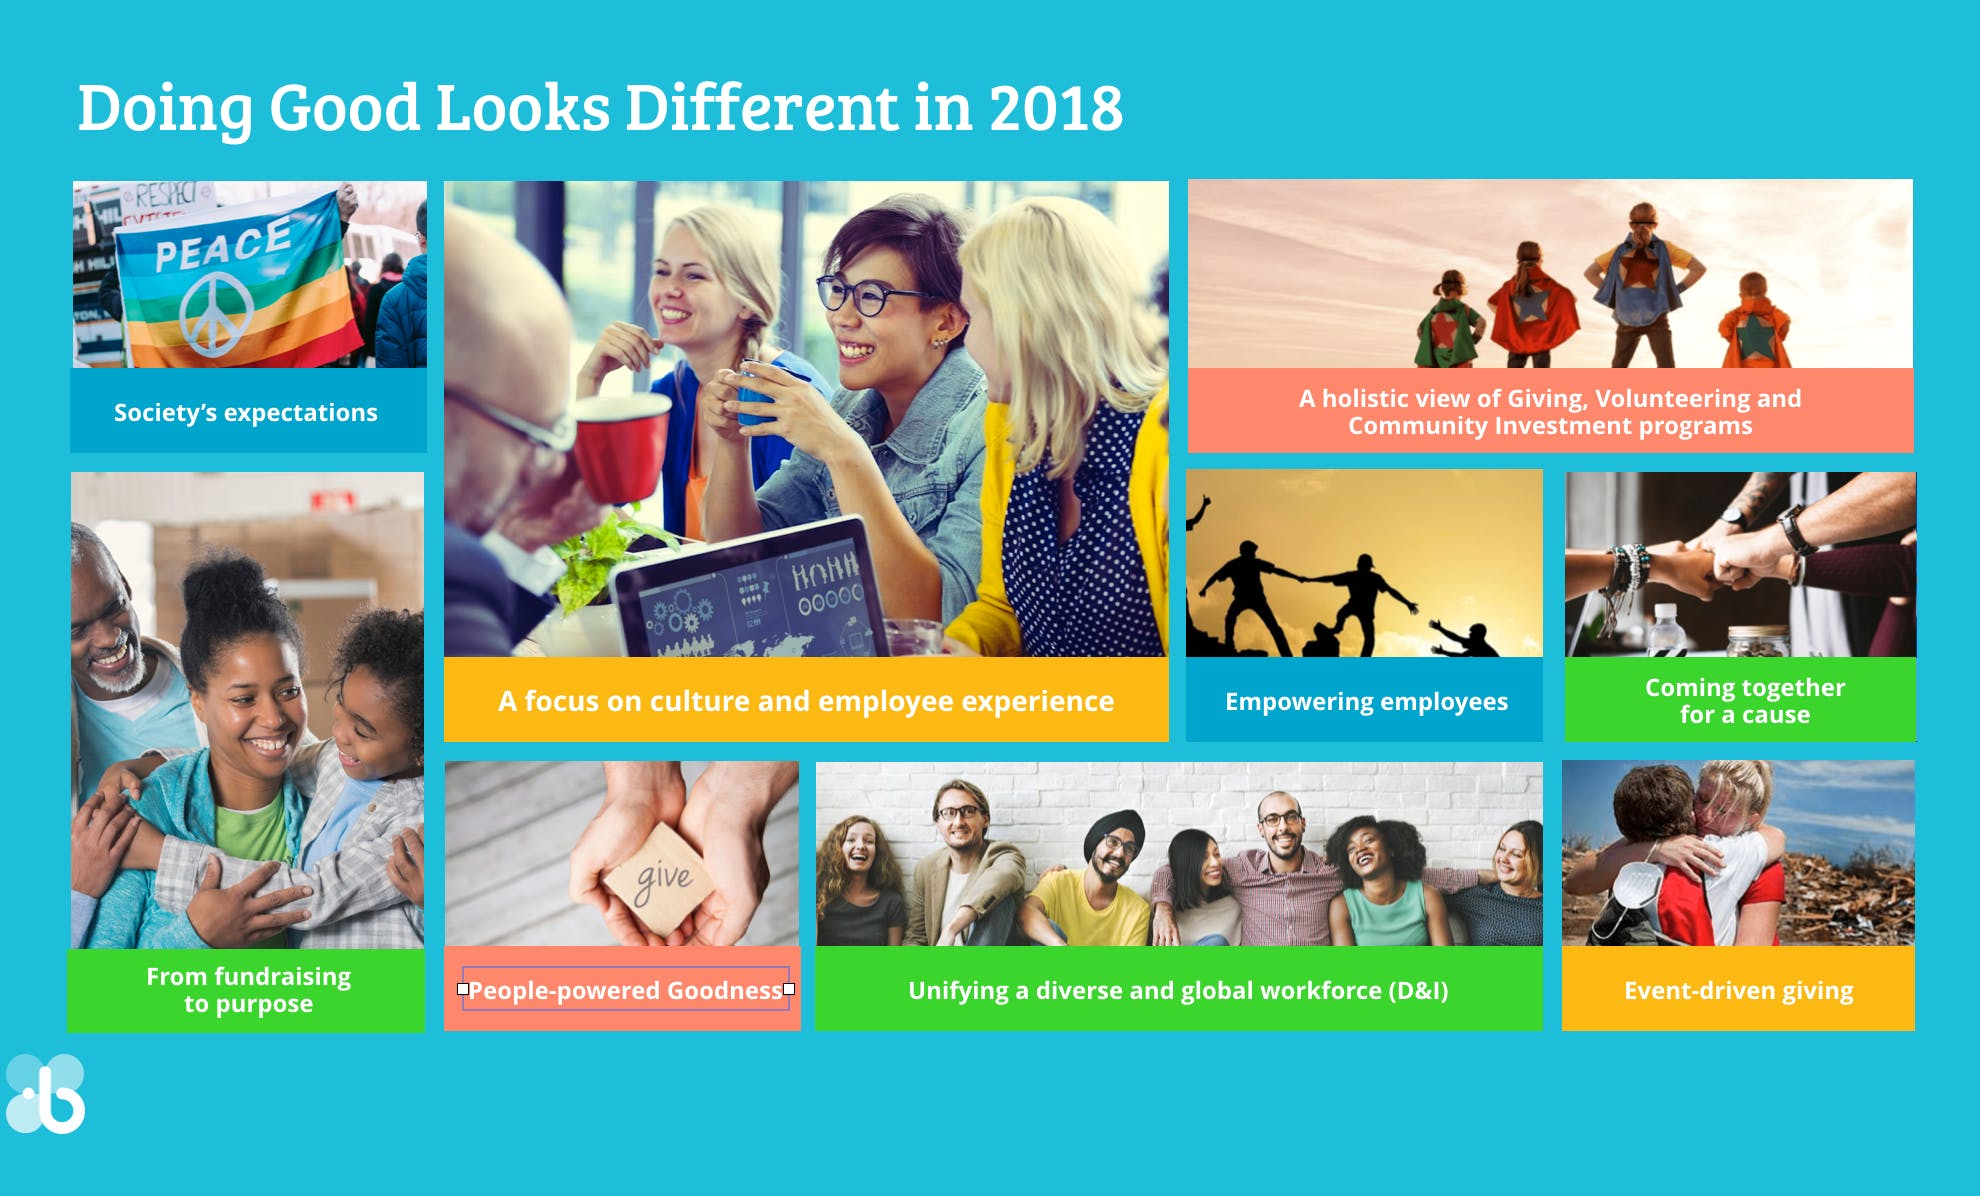 How Doing Good Looks Different in 2018